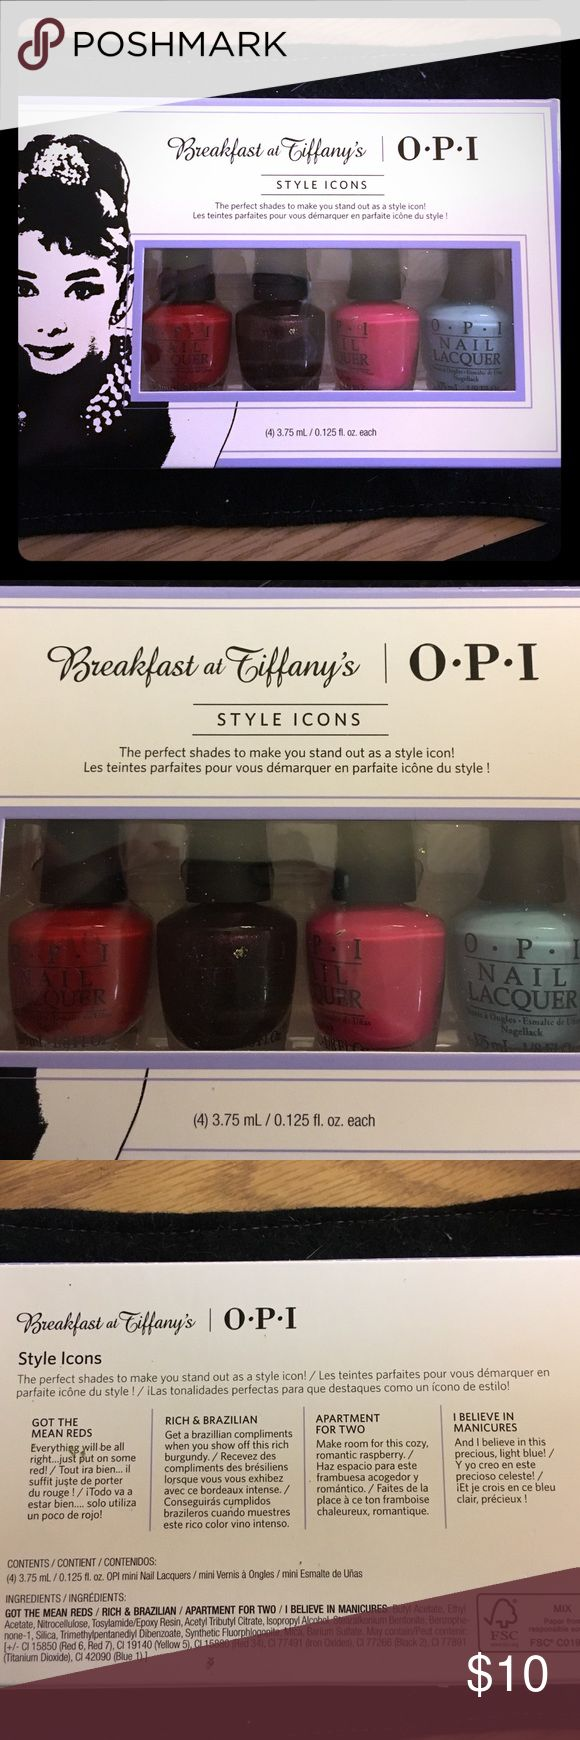 Opi Breakfast At Tiffany's Gift Set Opi's Breakfast at Tiffany's Four Piece Mini Gift Set! Limited time release! Includes: I Believe in Manicures, Apartment for Two, Got the Mean Reds, and Rich & Brazilian! Opi Other